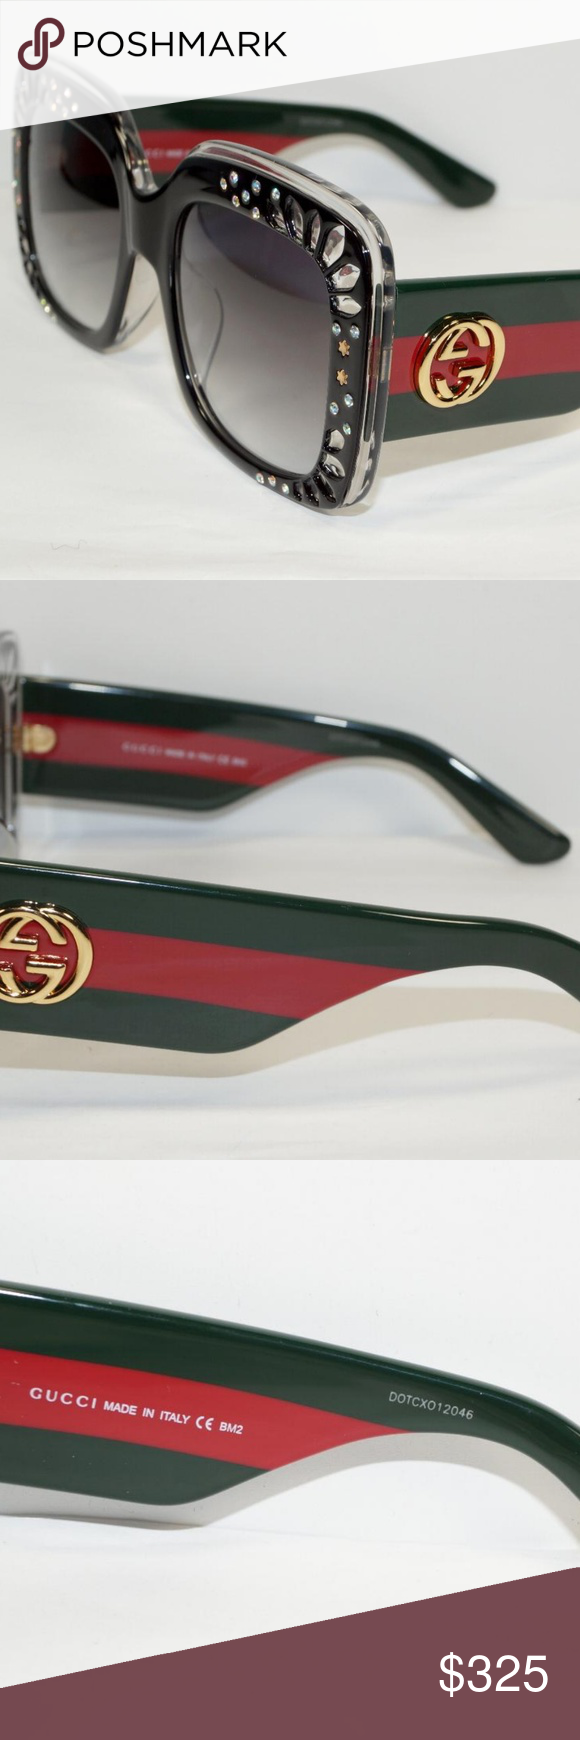 ea97fb3ceba GUCCI BLACK CRYSTAL GREEN RED STRIPE SUNGLASSES Brand New 100% Authentic  GUCCI RED GREEN CRYSTAL